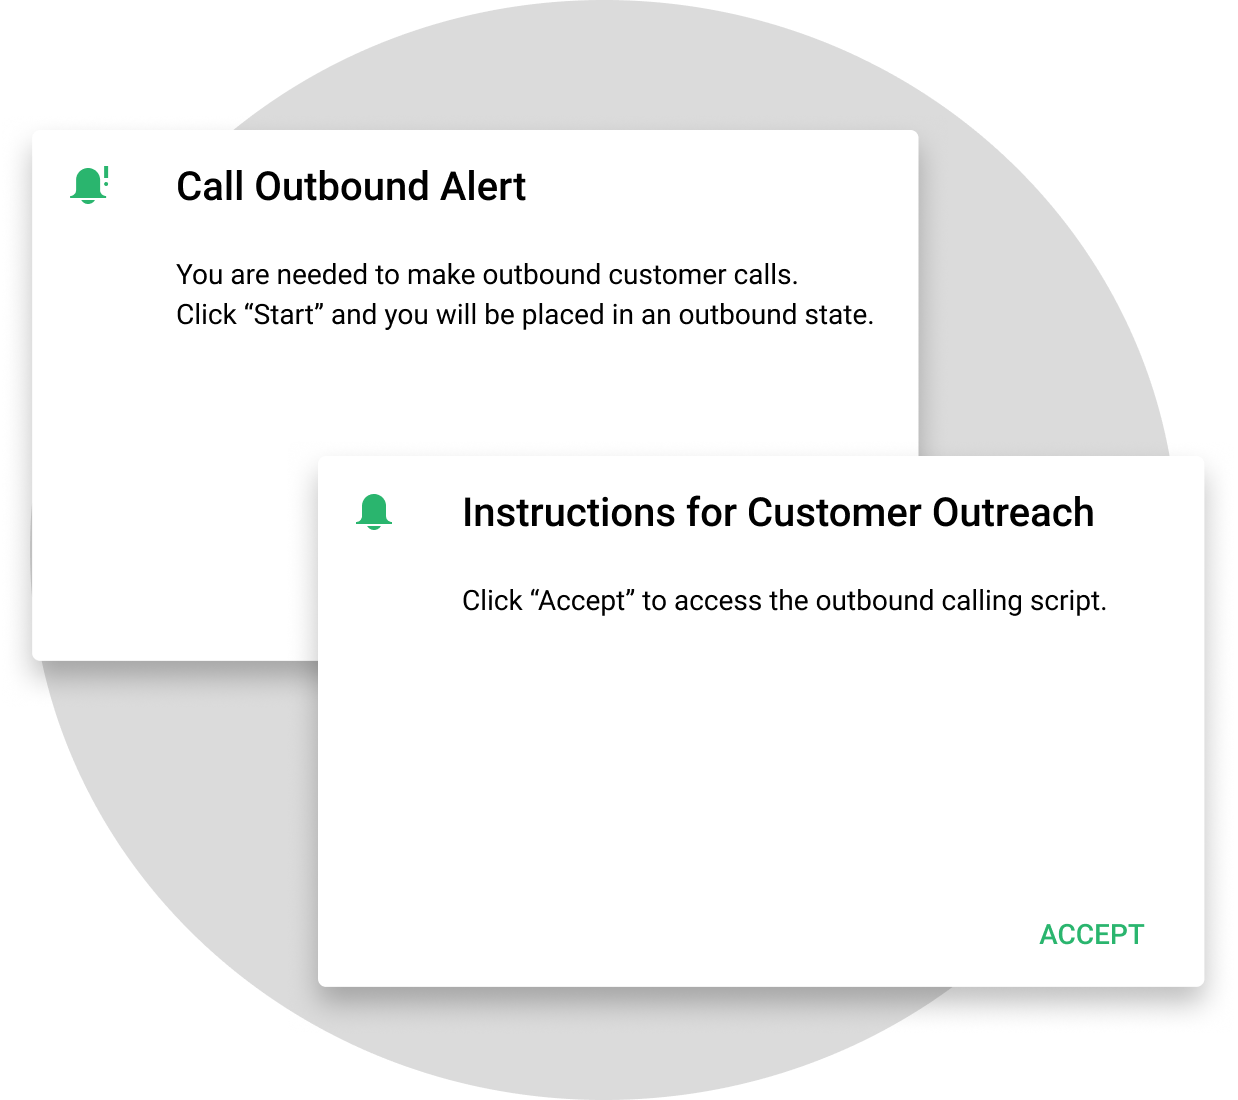 Call outbound alert to reach out to customers in advance